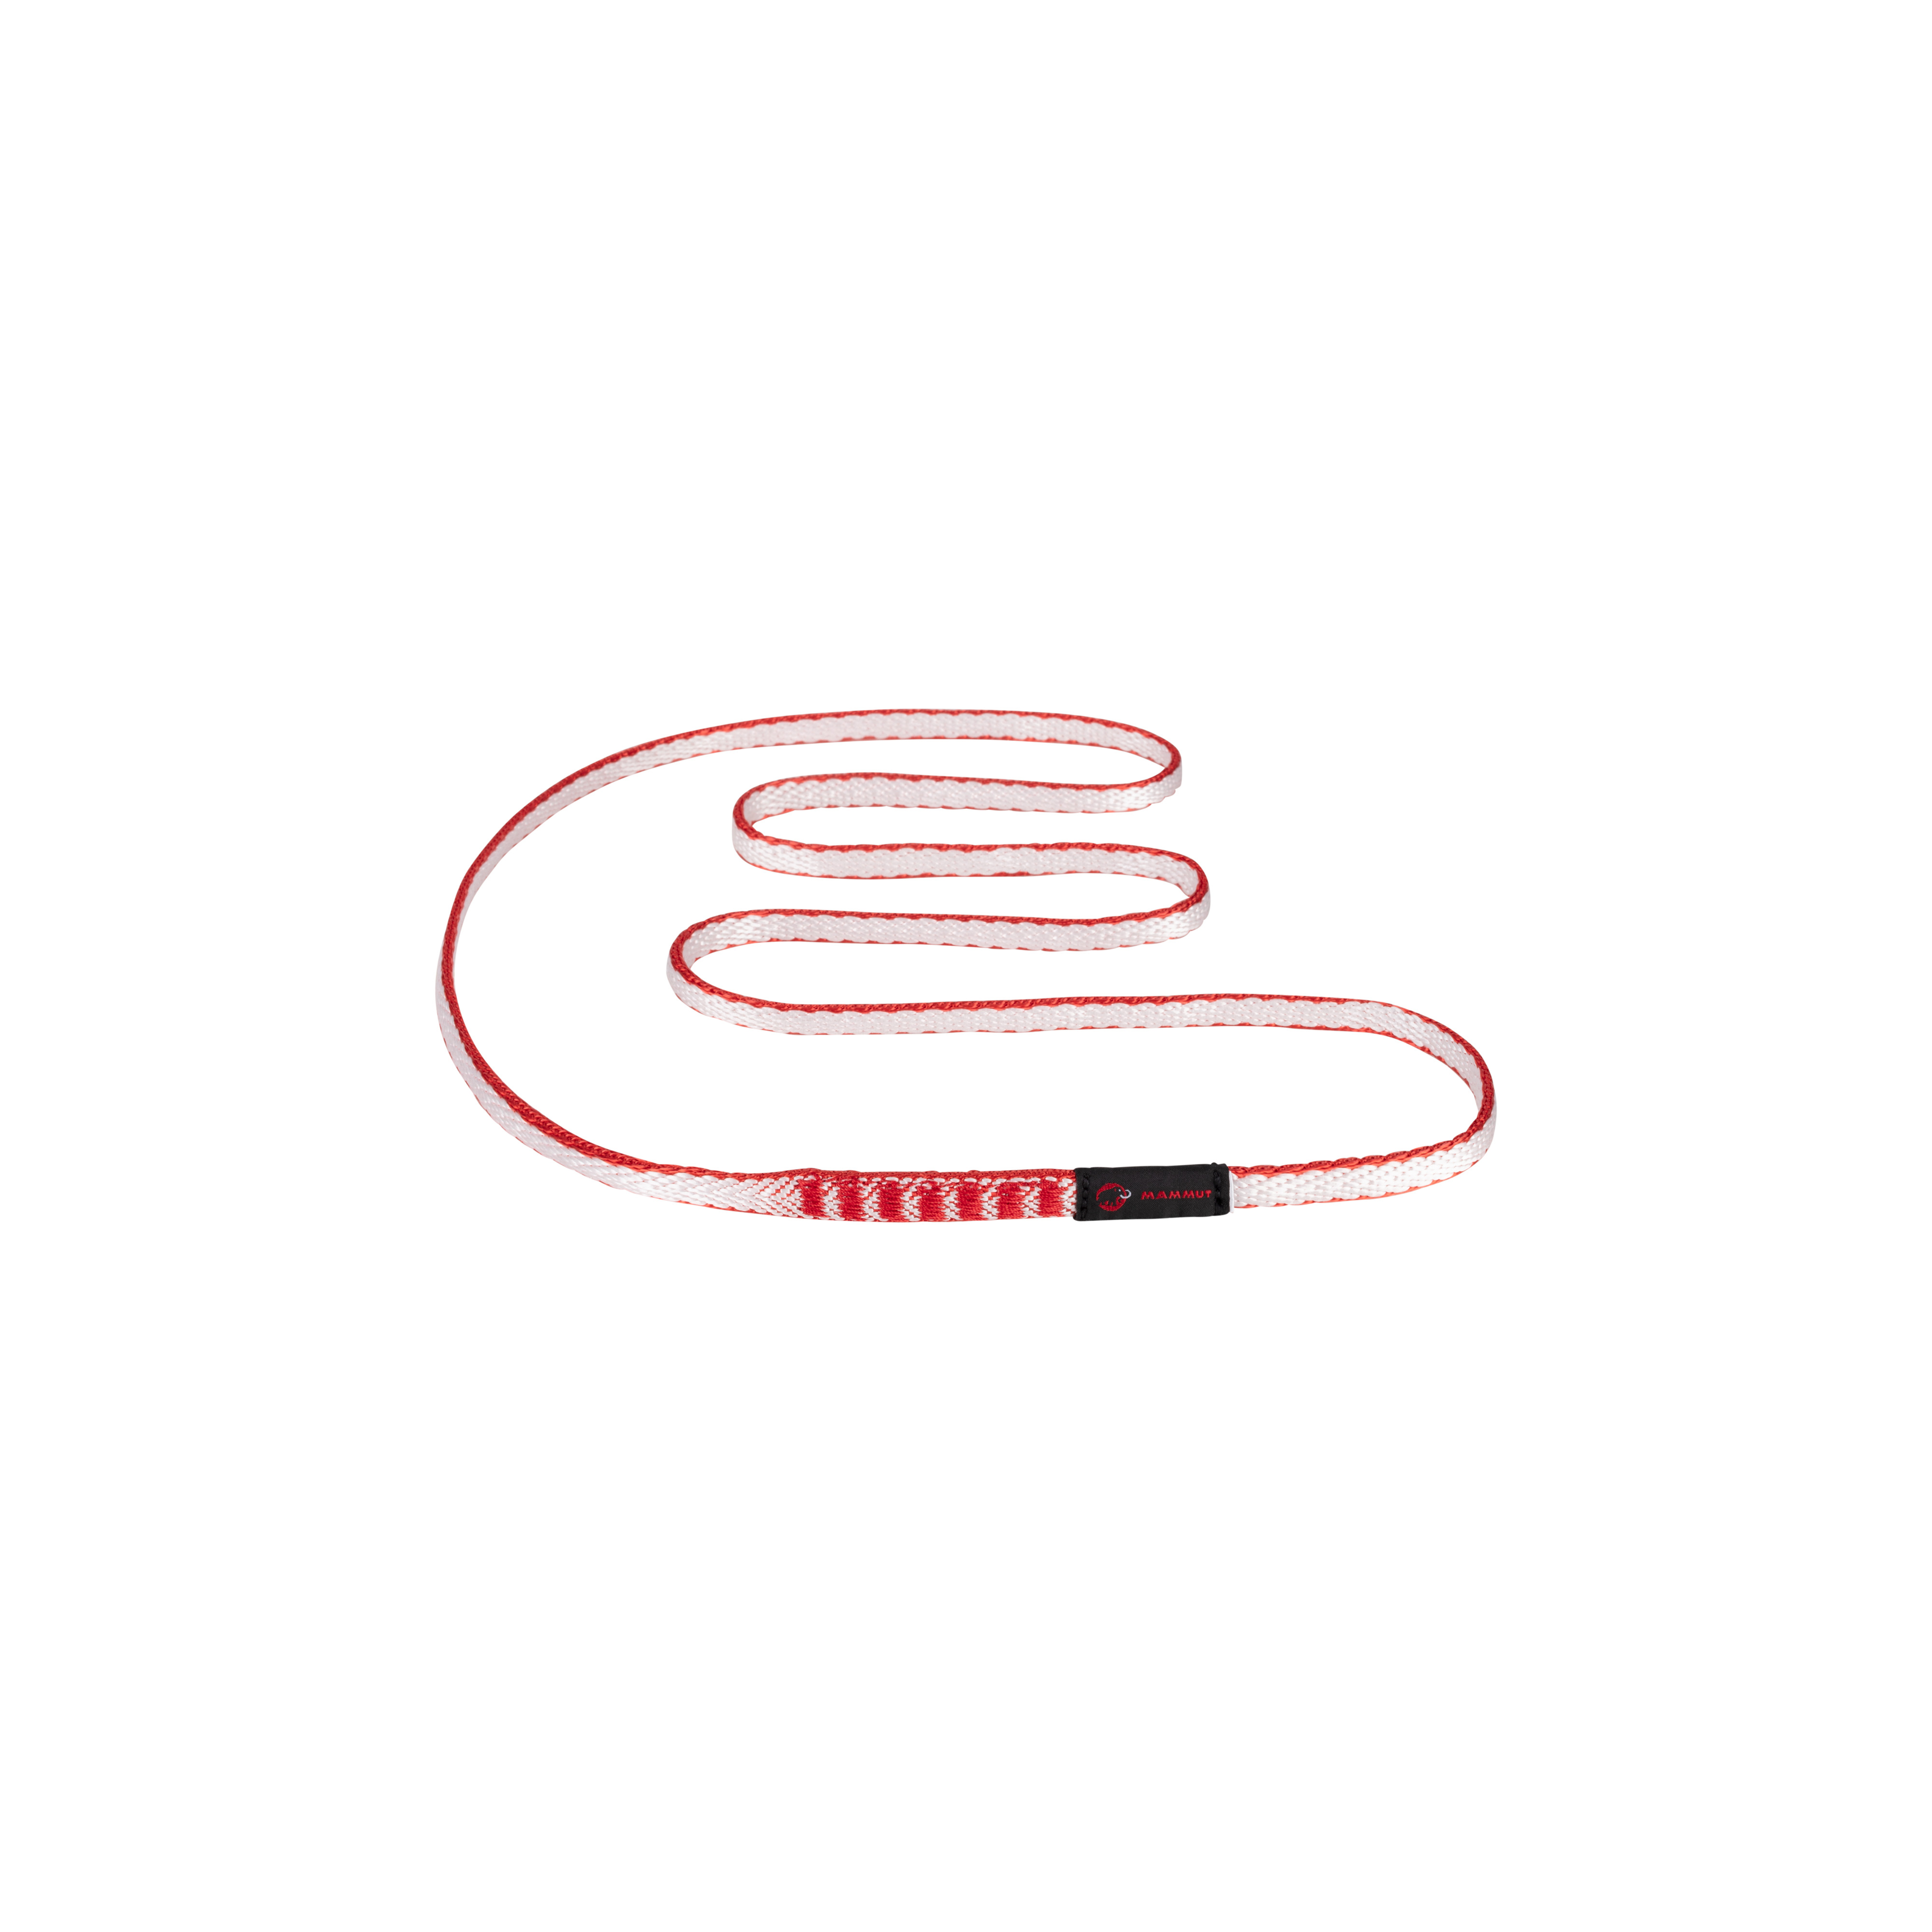 Contact Sling 8.0 - 60 cm, red thumbnail